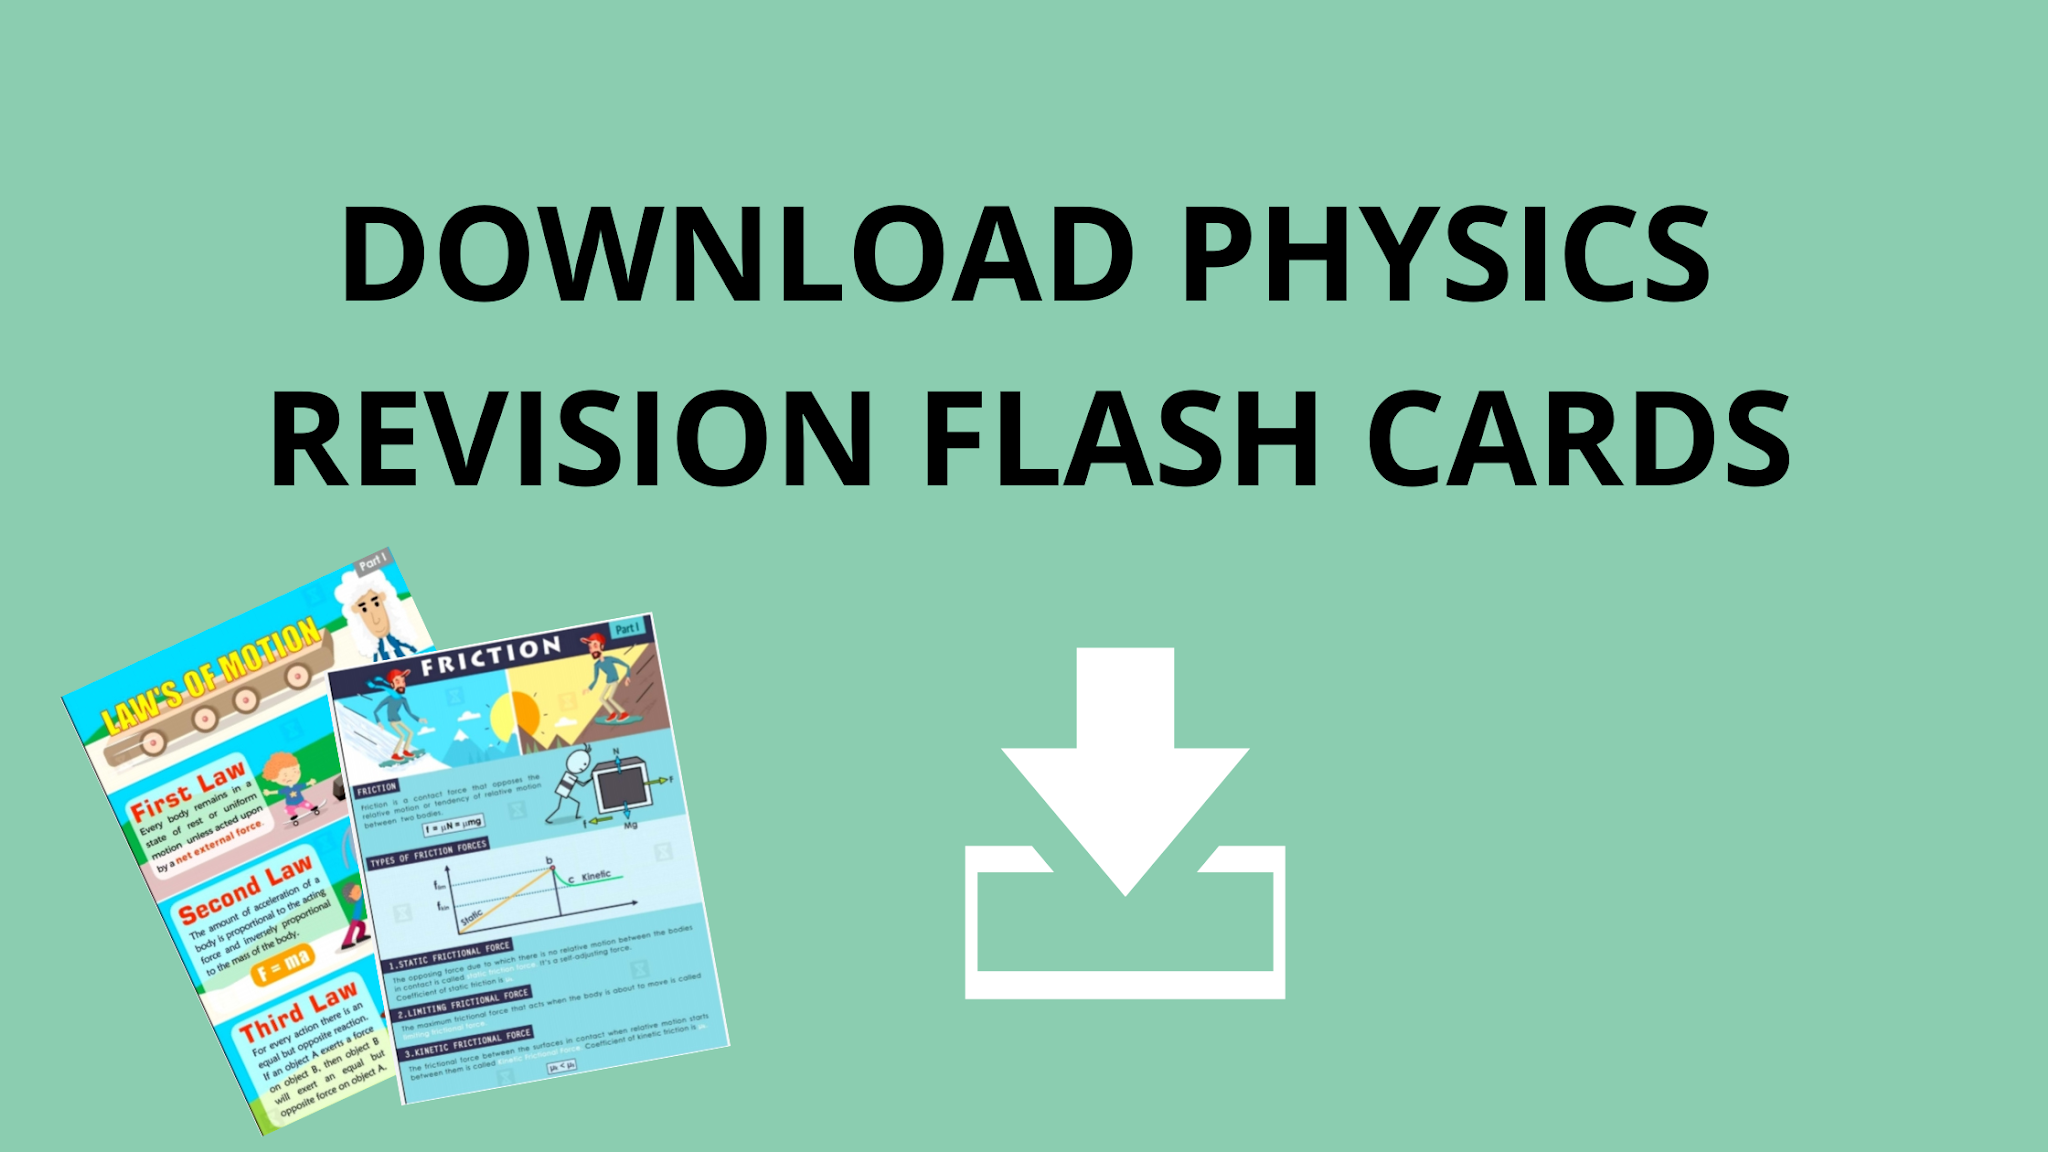 [PDF] Chapterwise Physics Revision Flash Cards For IIT JEE